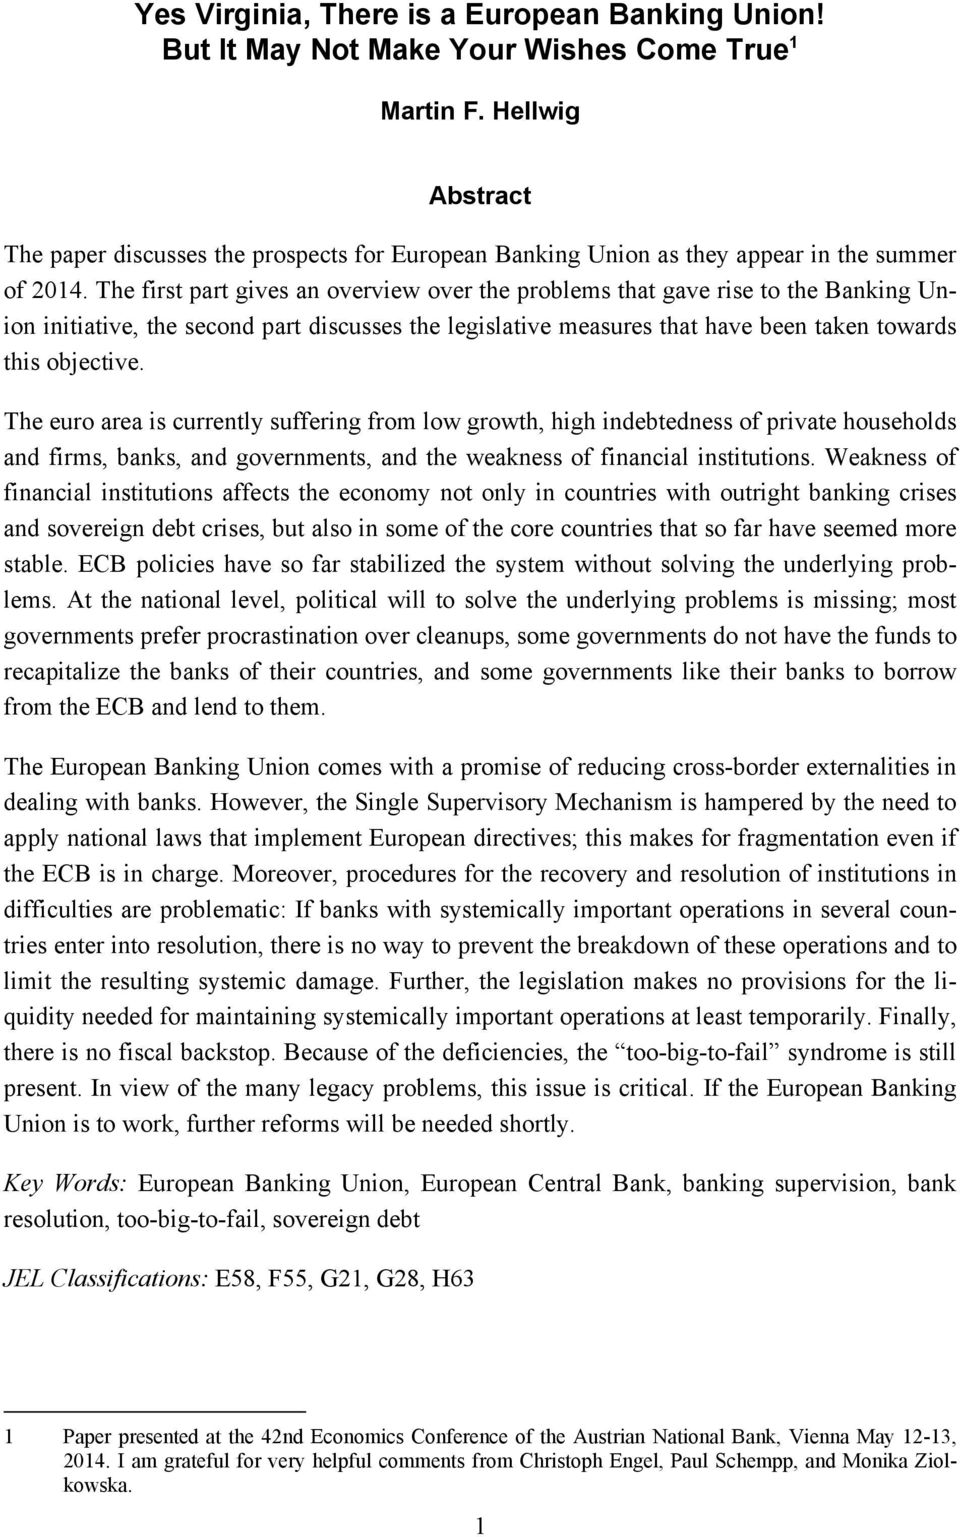 The first part gives an overview over the problems that gave rise to the Banking Union initiative, the second part discusses the legislative measures that have been taken towards this objective.